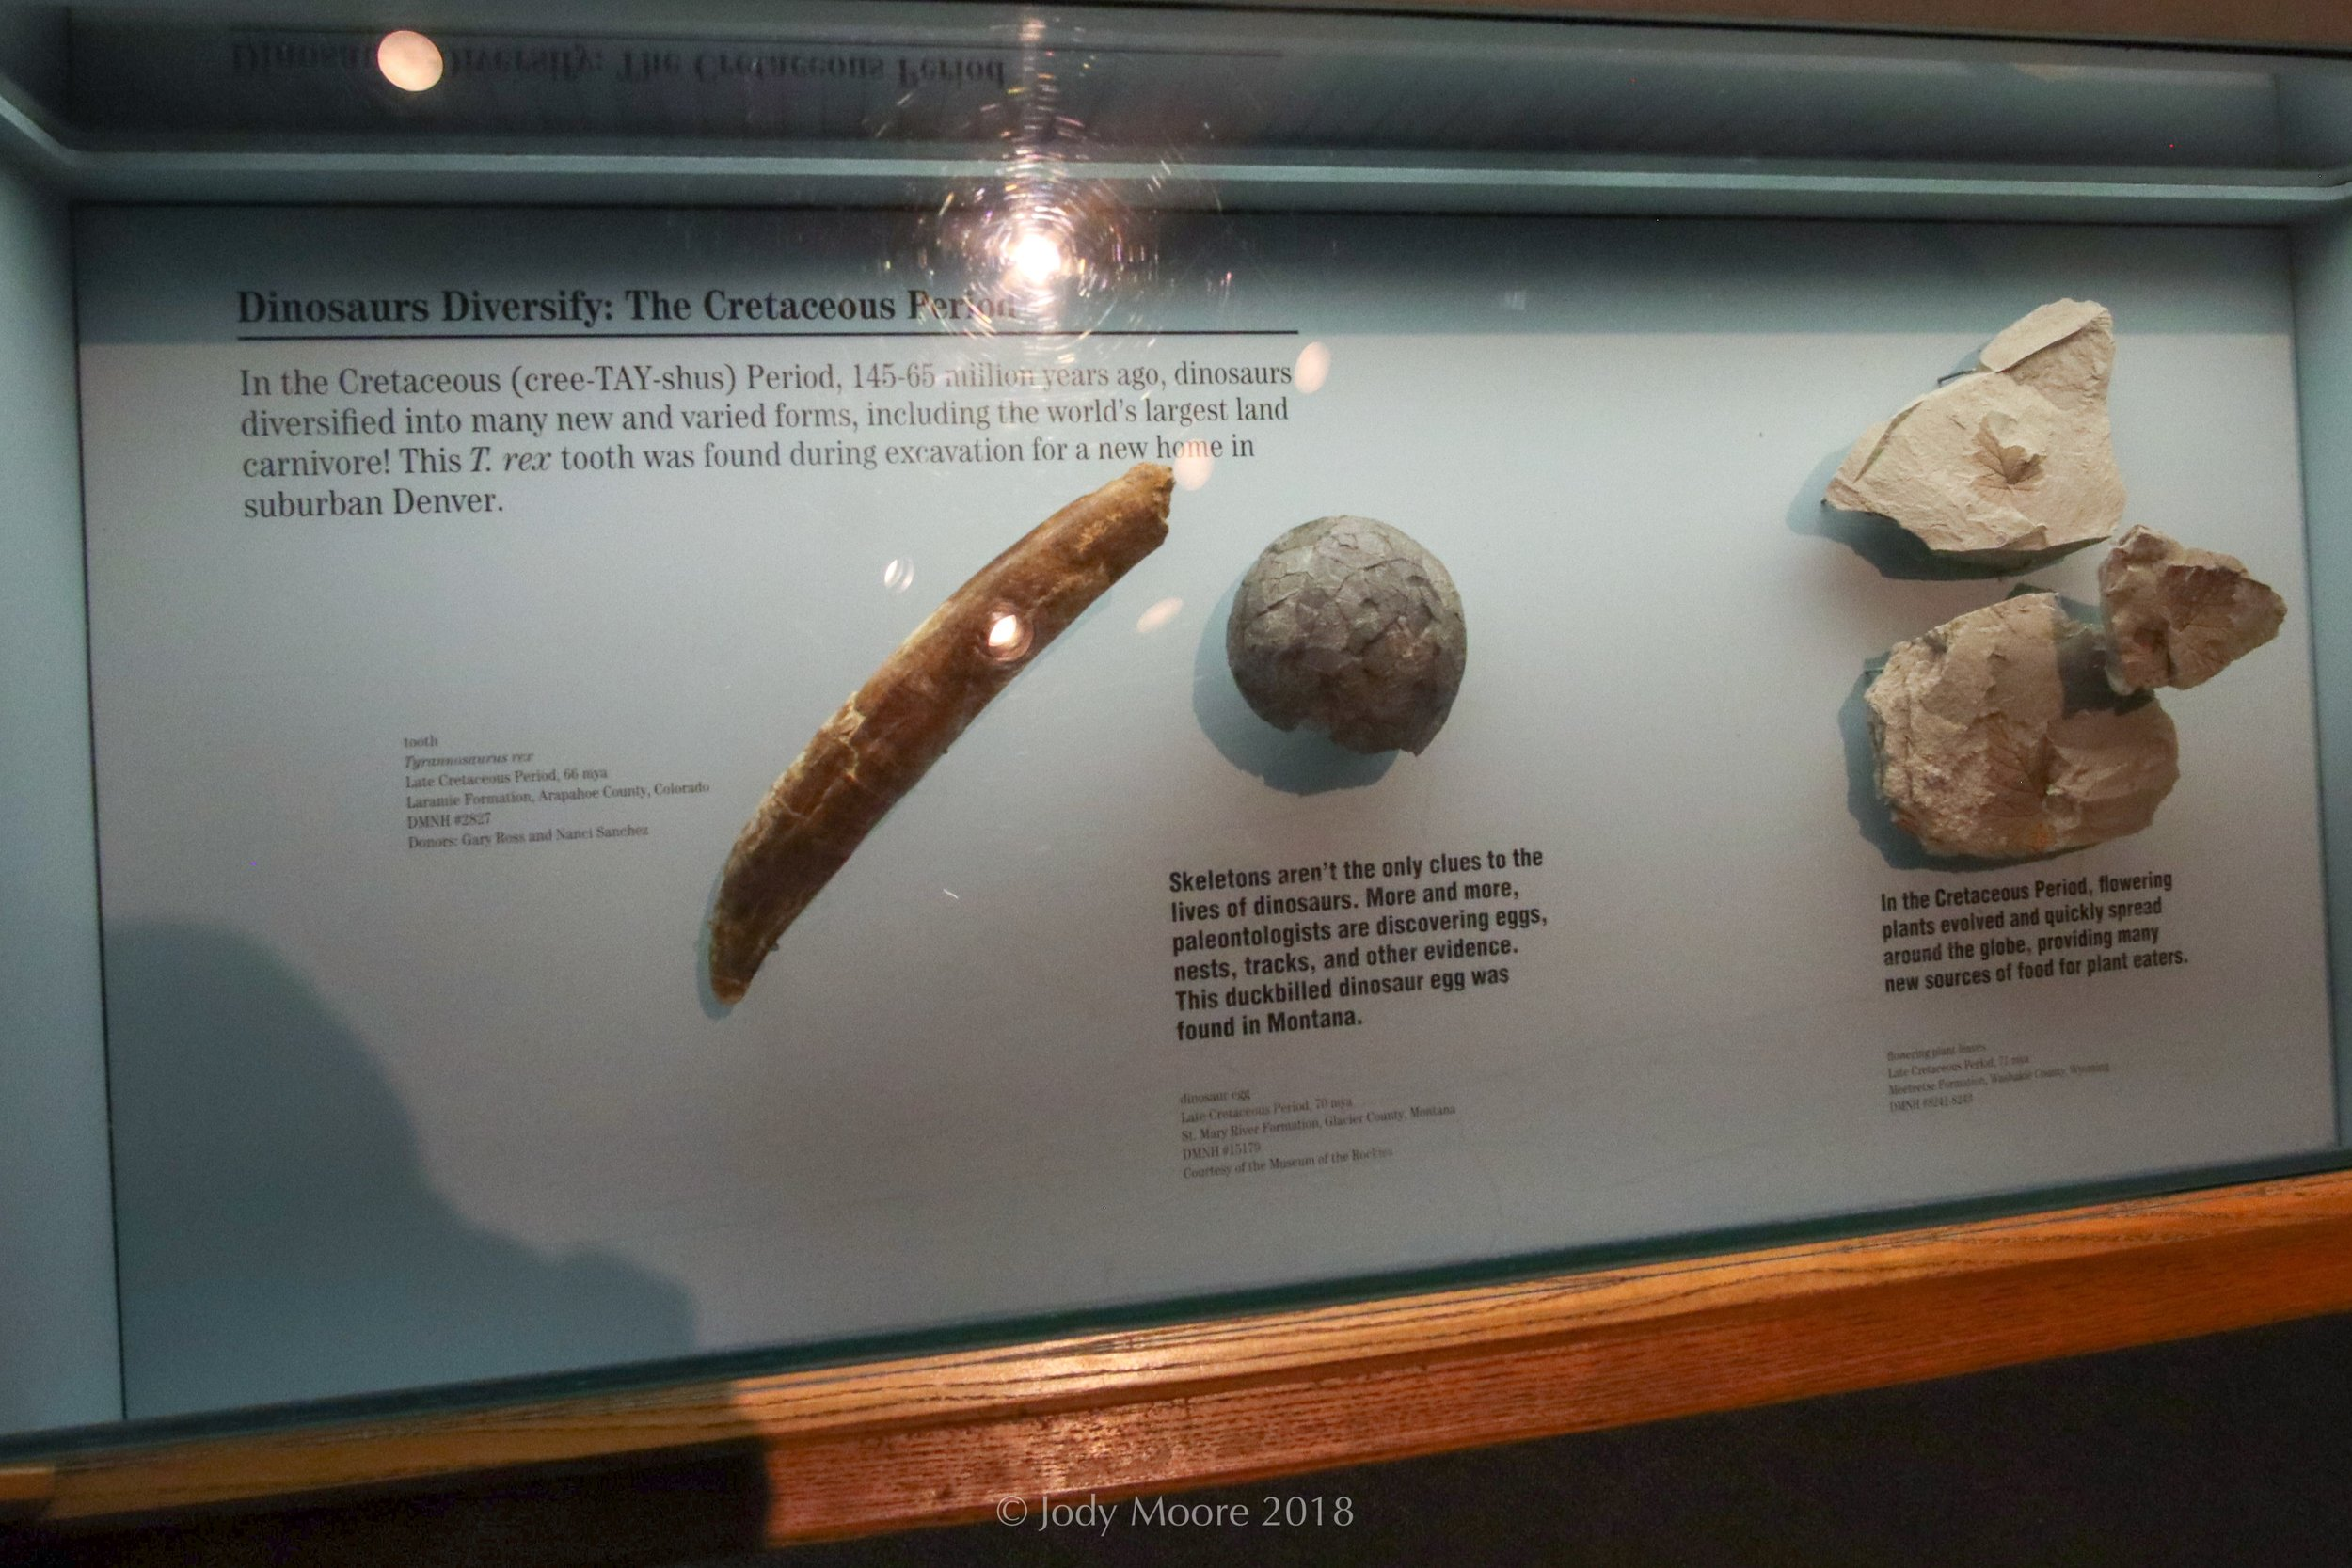 Specimen DMNH 2827 consists of several leg and shoulder bones, ribs, and three teeth of a tyrannosaur found in Littleton, CO in 1992. Two of teeth are displayed in the Denver Museum of Nature and Science, where the specimen resides.